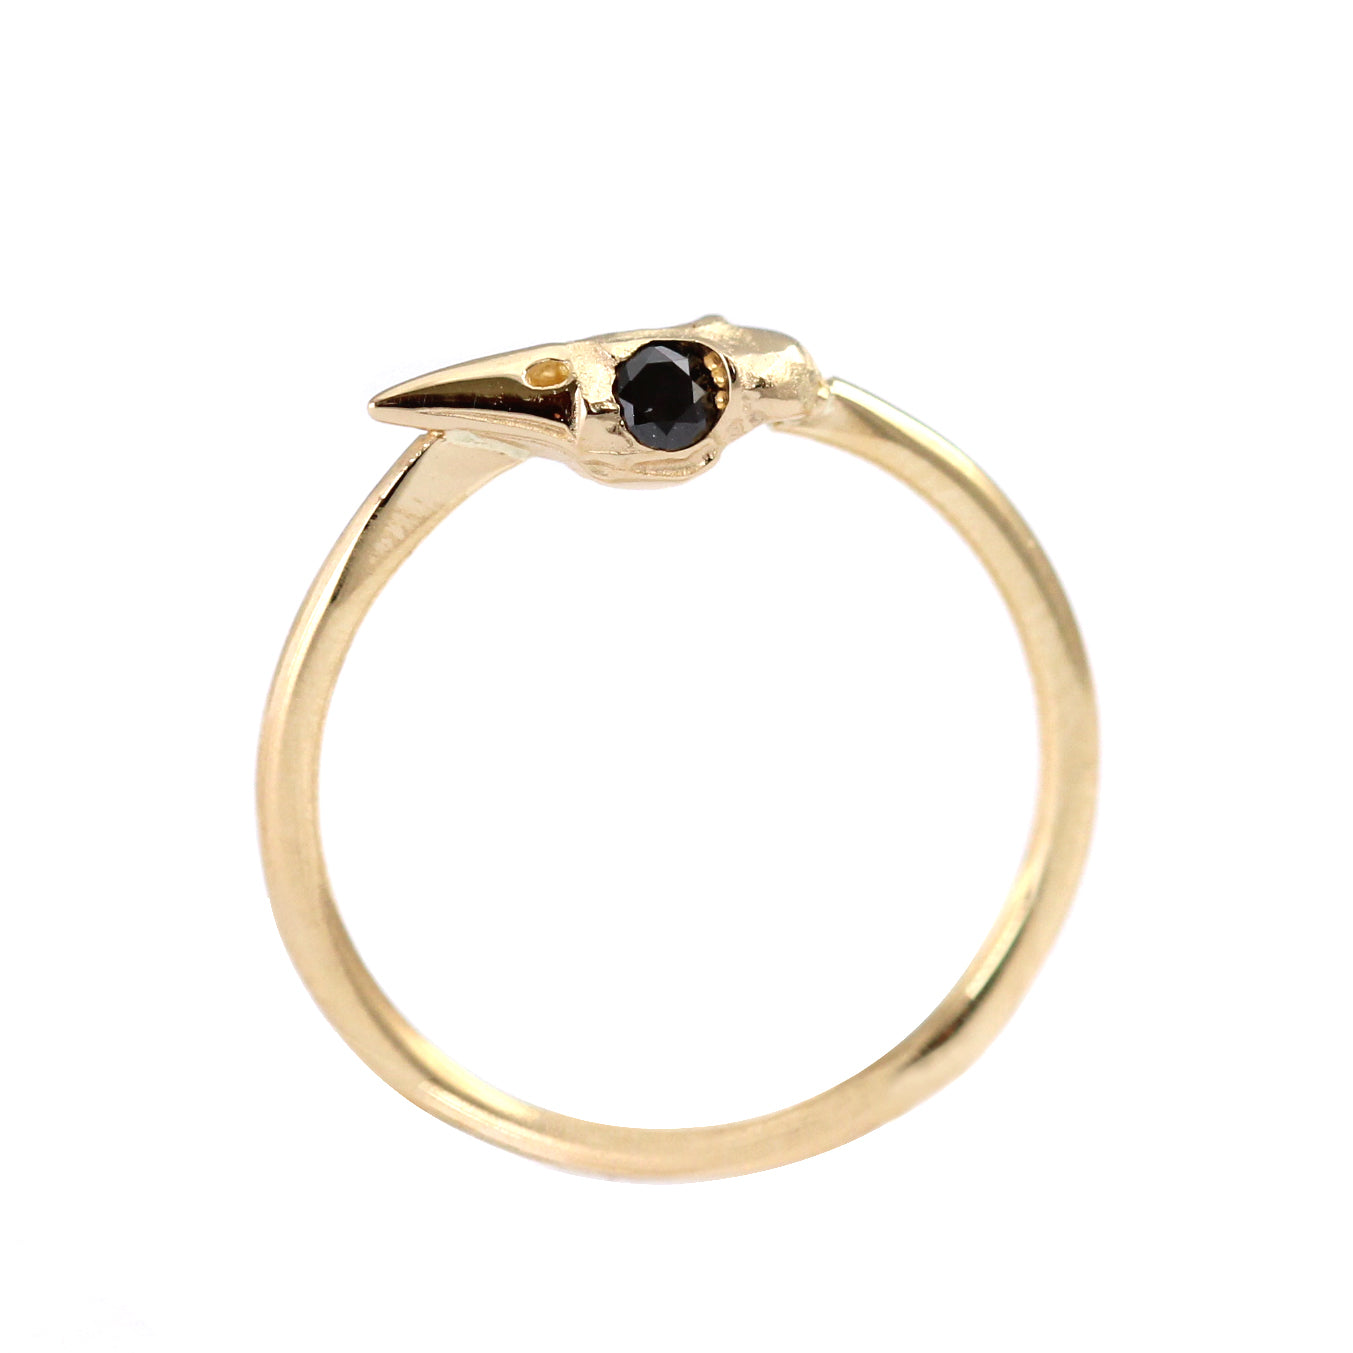 Vertical View Of Dainty Gothic Gold Ring